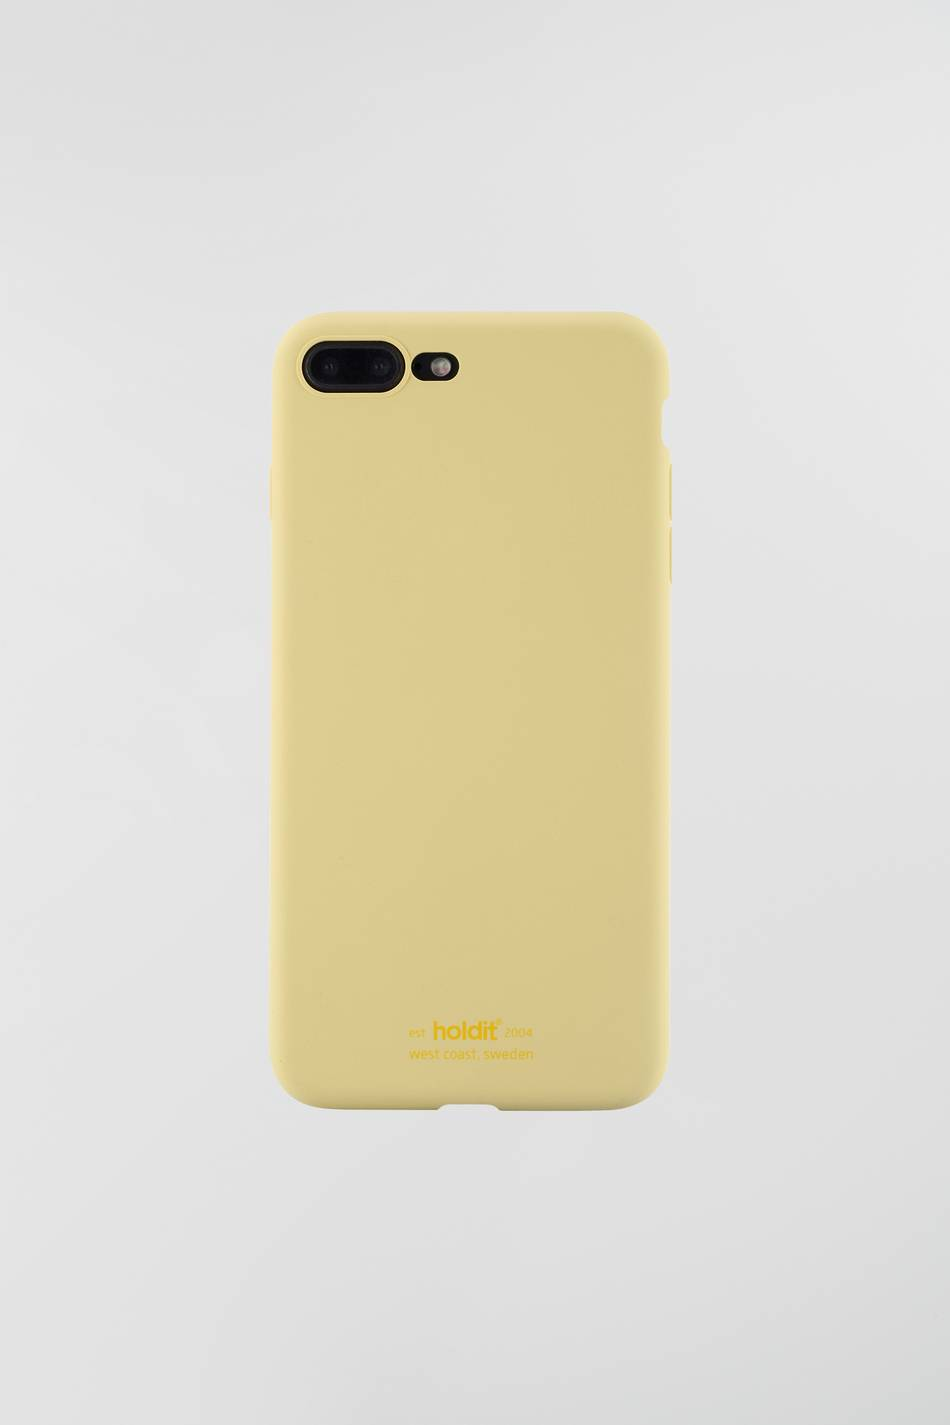 Gina Tricot Holdit iphone 7/8 Plus silicone case ONESZ Female Yellow